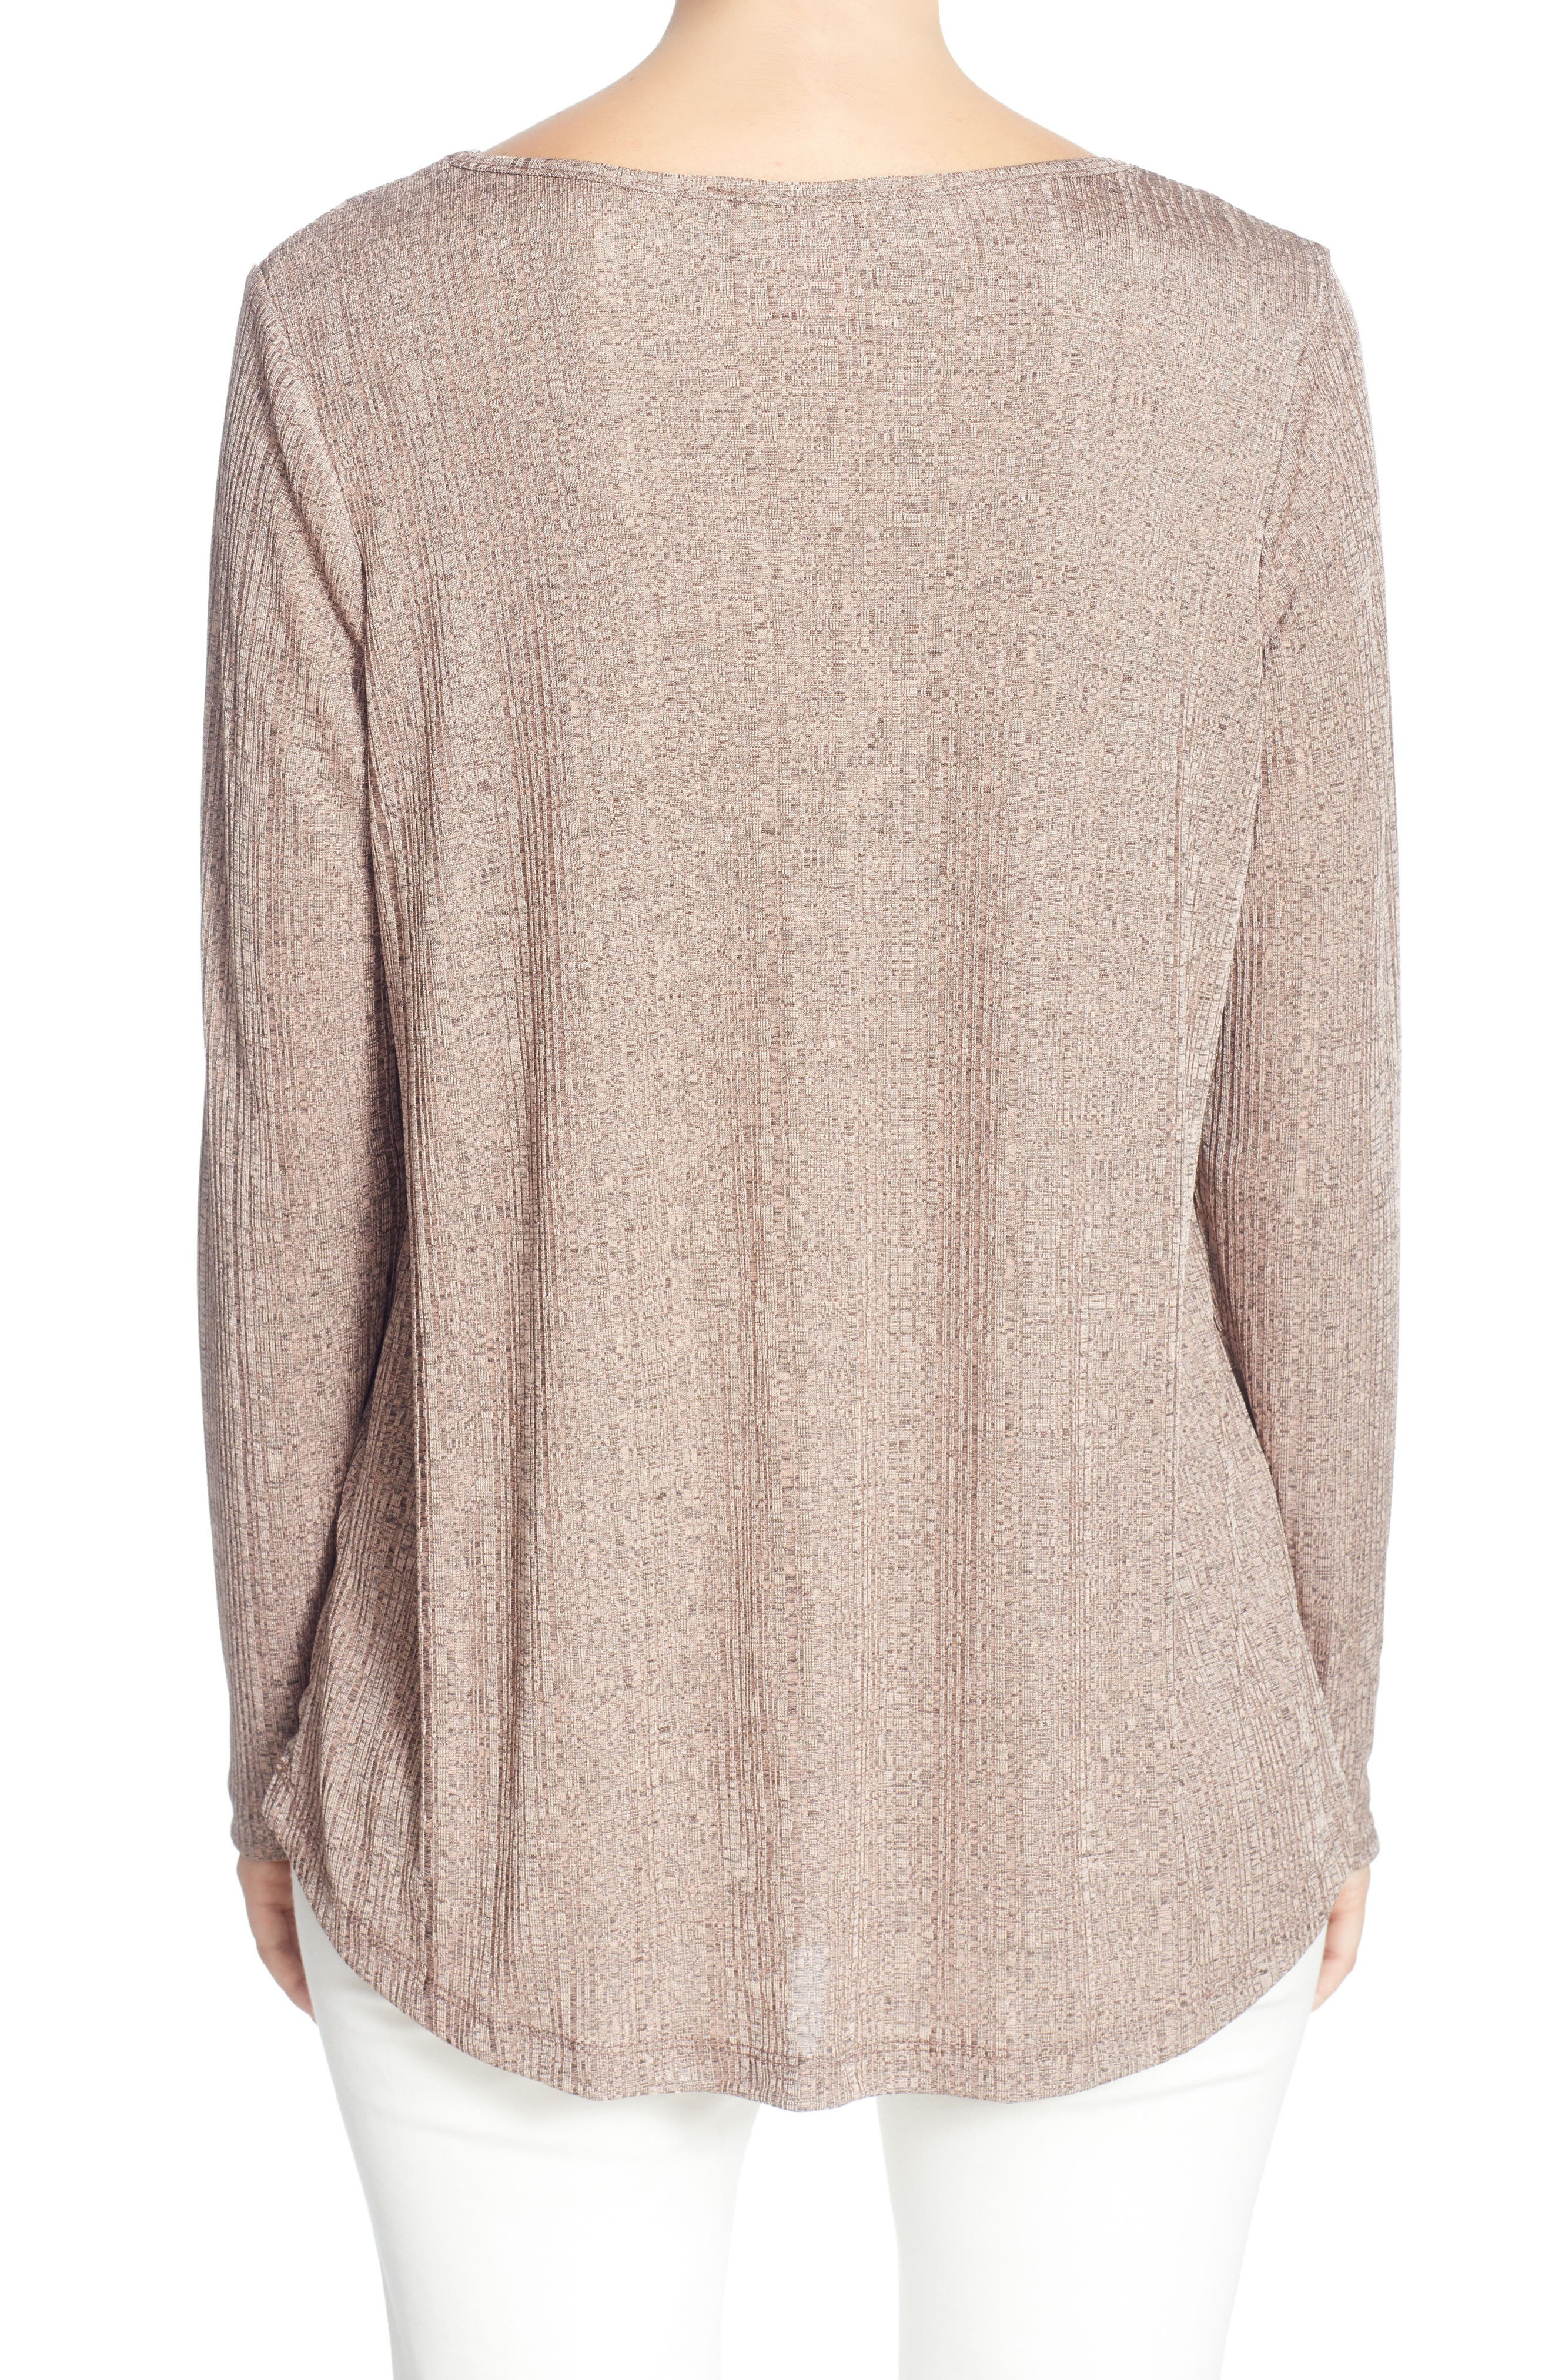 Alternate Image 2  - Catherine Catherine Malandrino Remi Metallic Knit Top